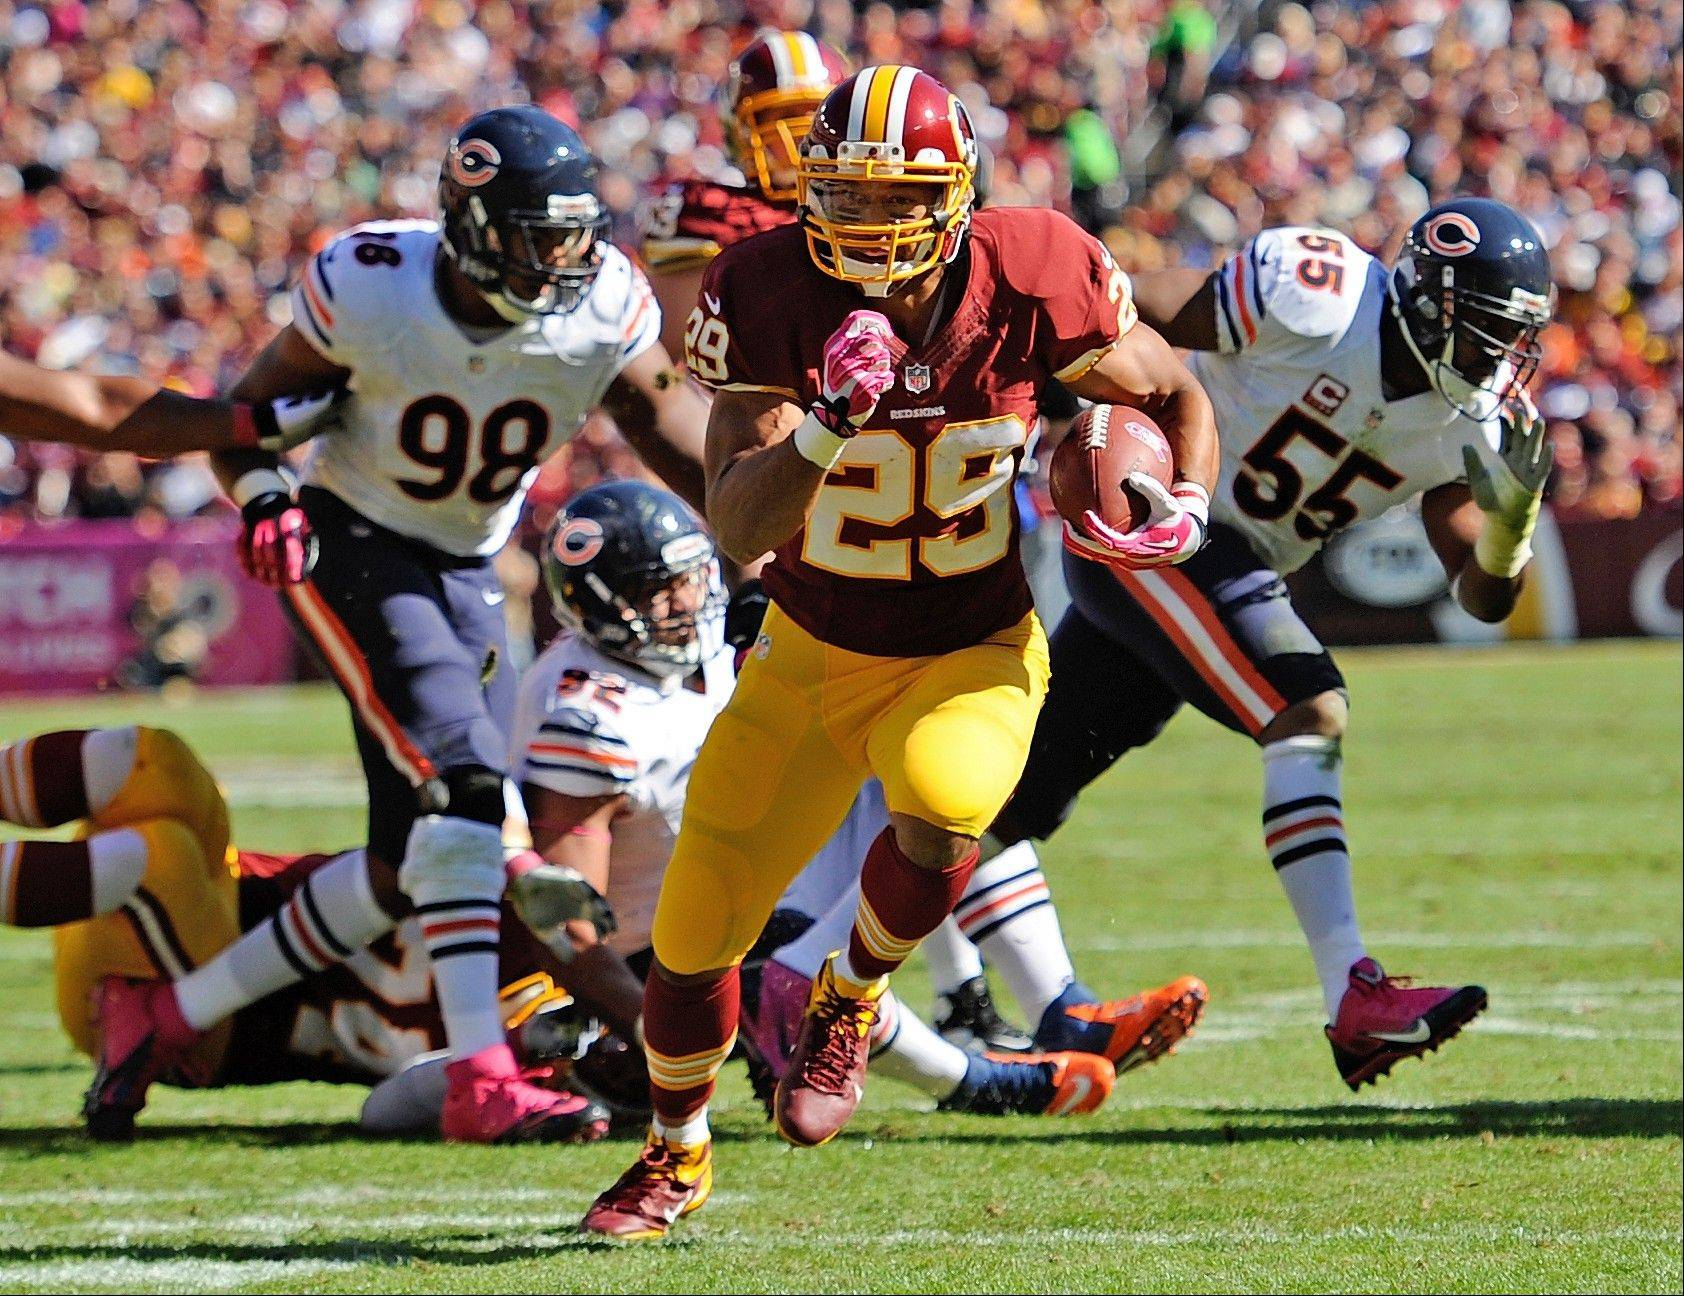 Washington running back Roy Helu breaks free and heads toward the end zone for a touchdown during the first half of a NFL game against the Bears in Landover, Md., Sunday.